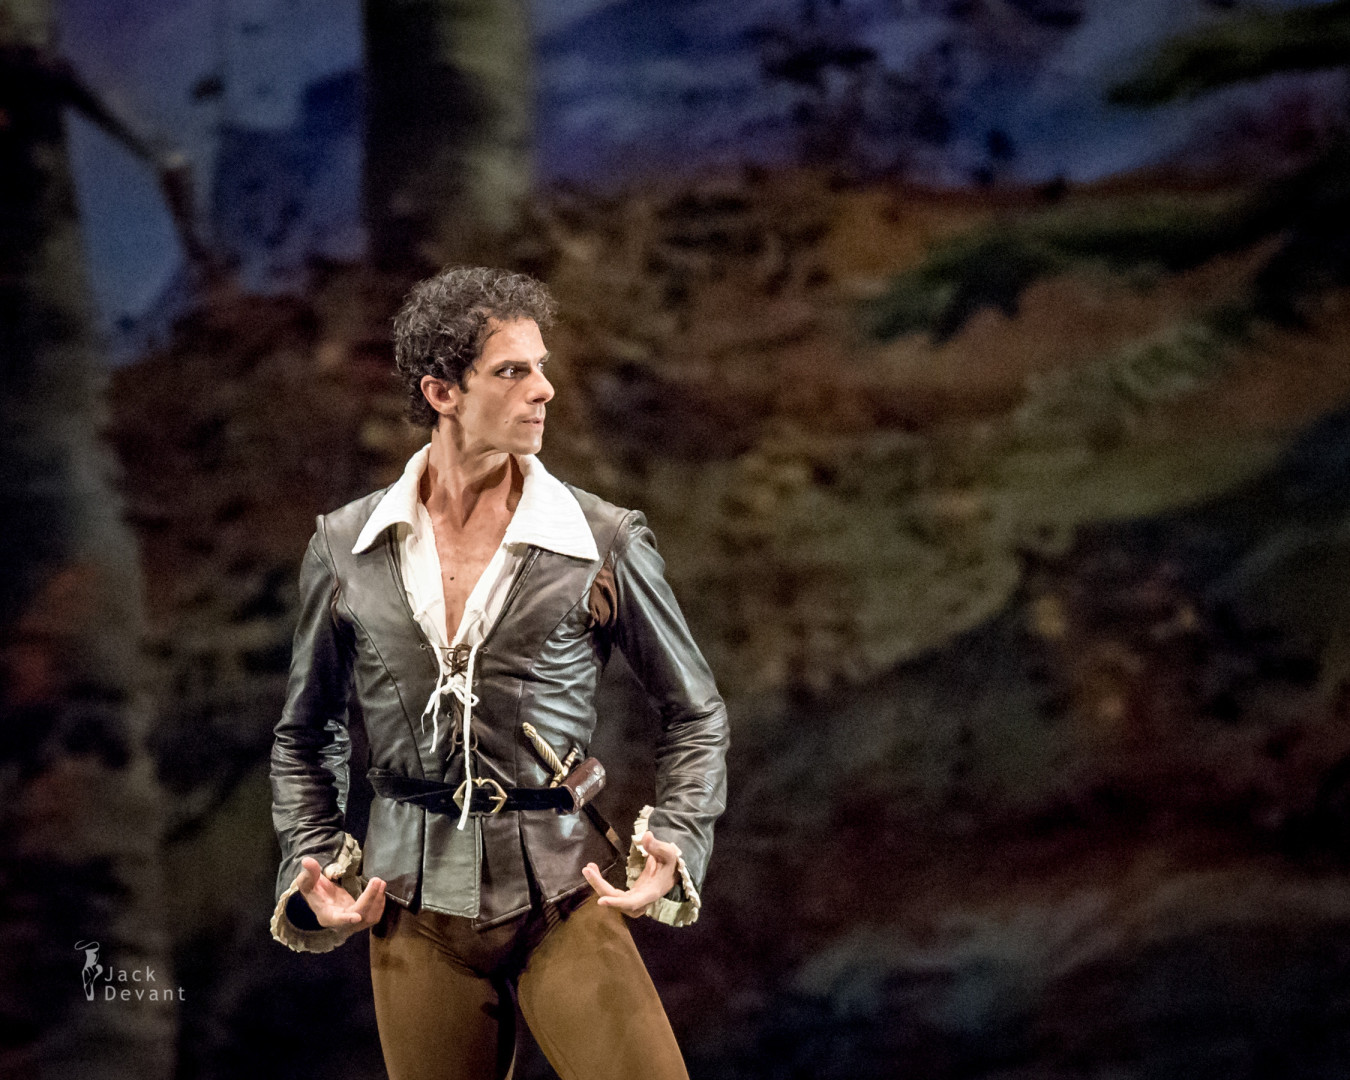 Edmondo Tucci as Hilarion in Giselle 1st act